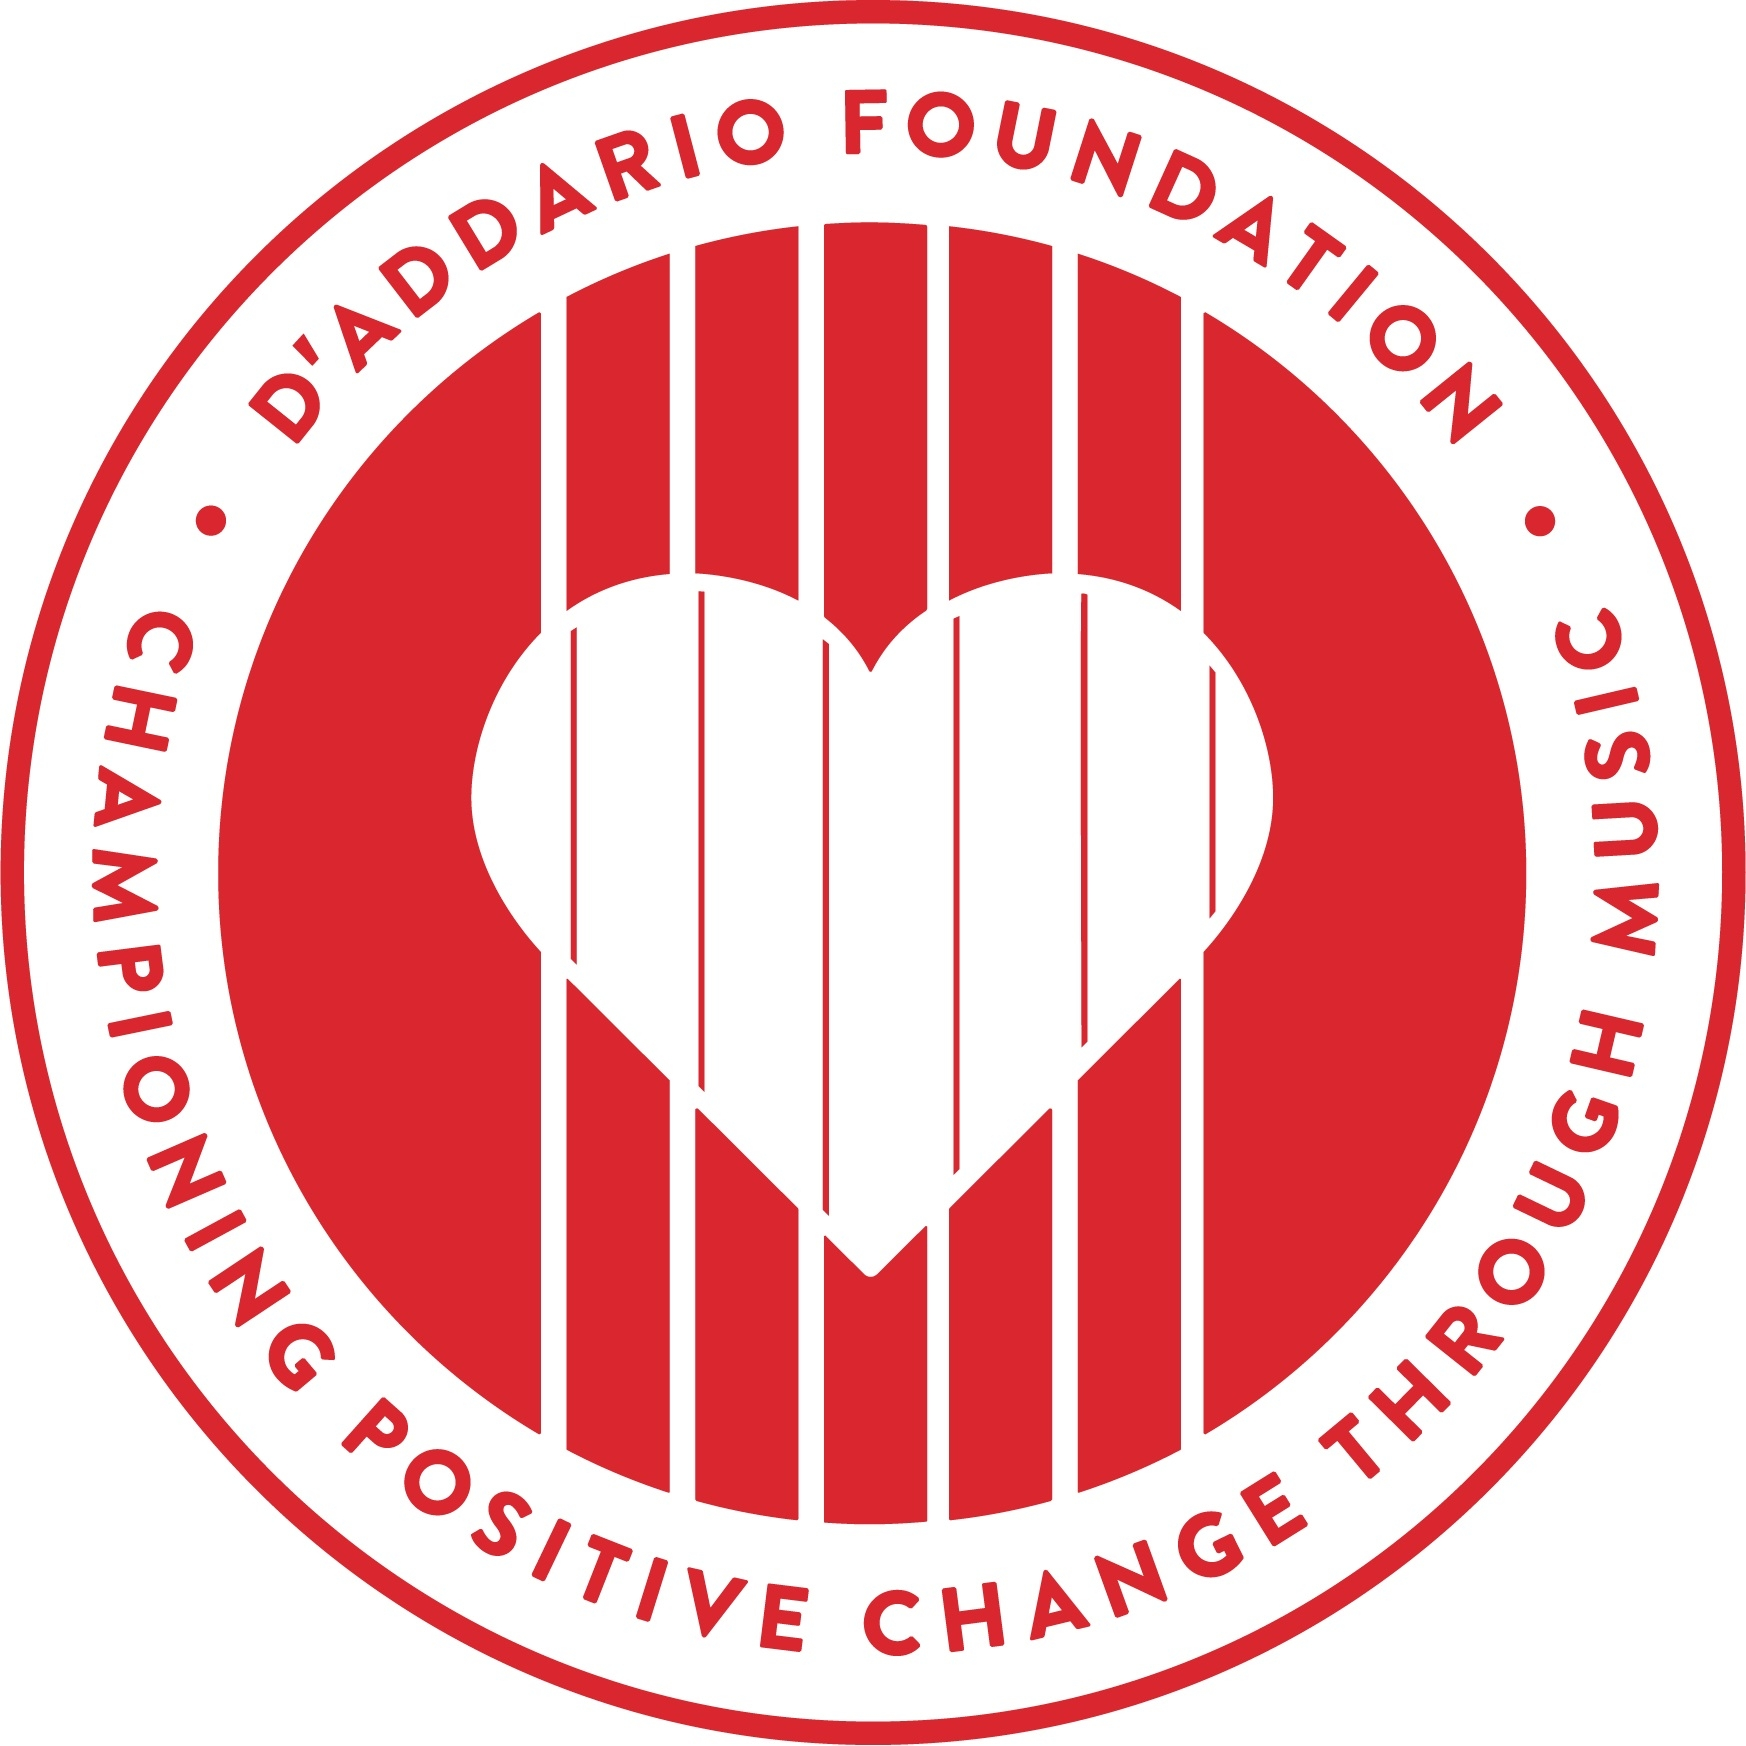 Foundation_Logo_New_2017.jpg